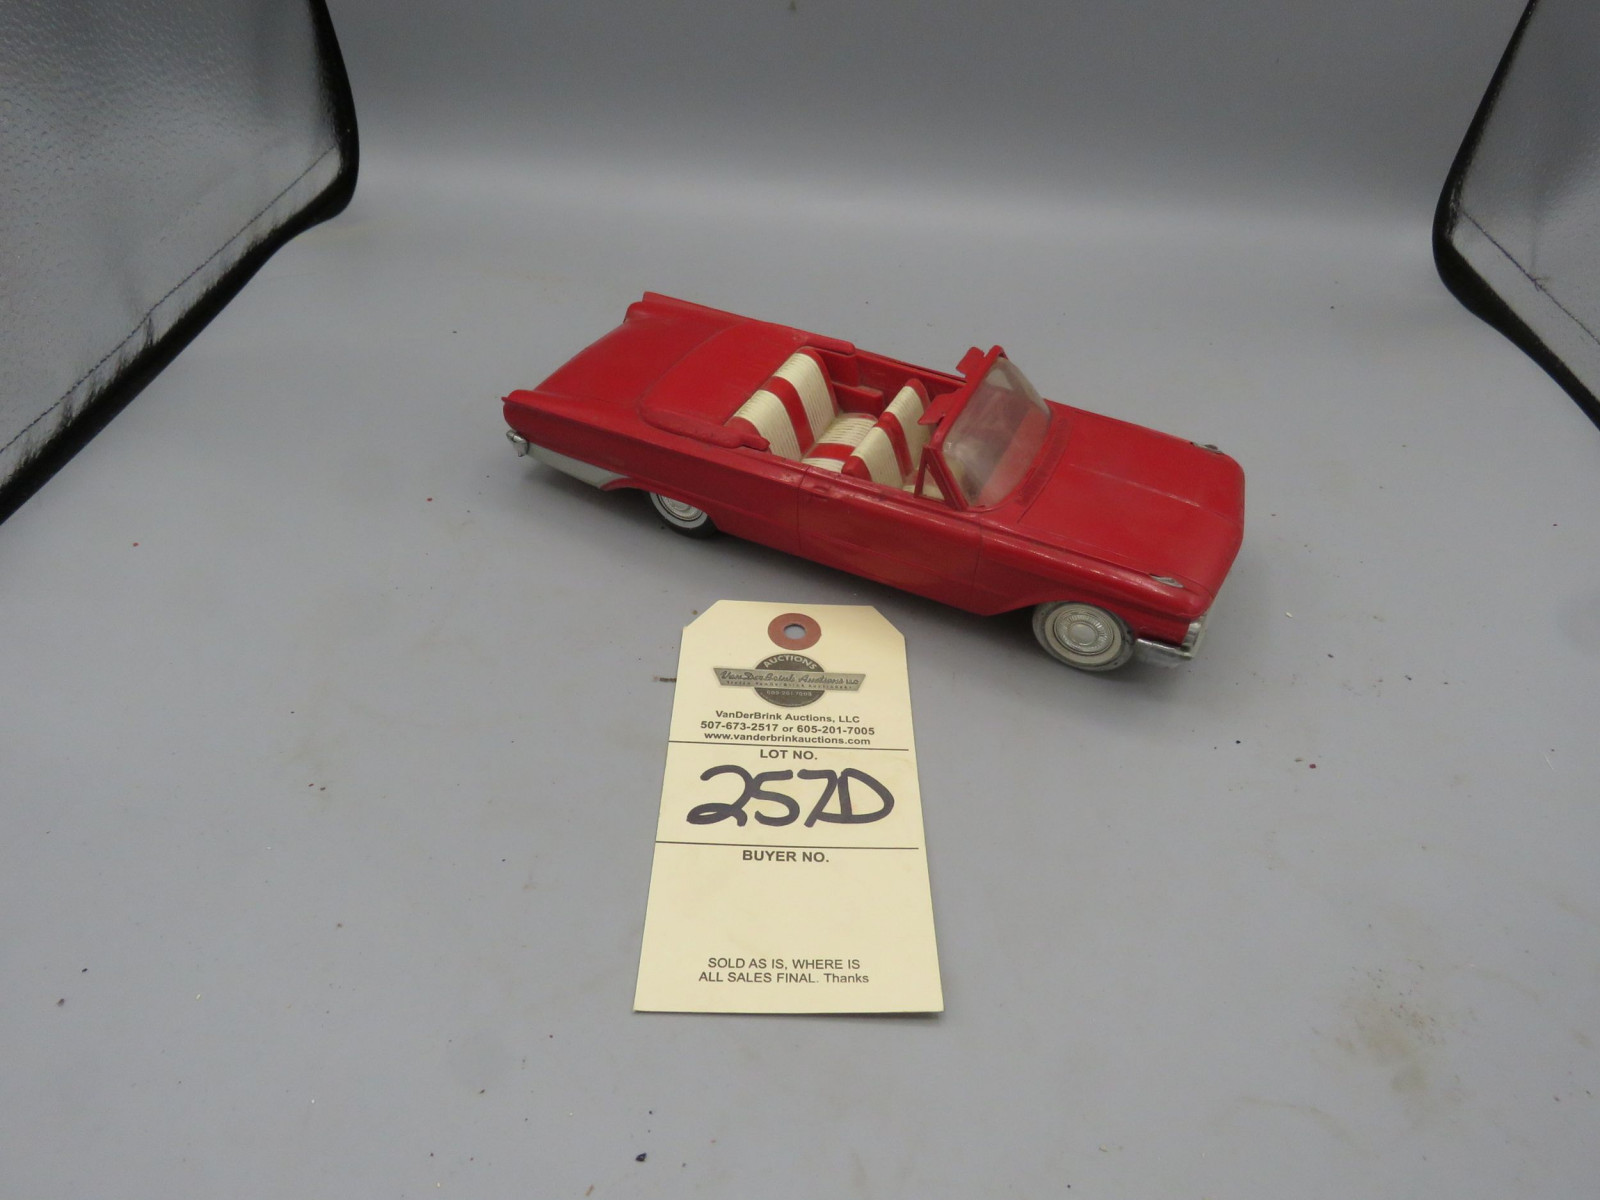 1961 Ford Convertible Promotional Model NIB Plastic - Image 1